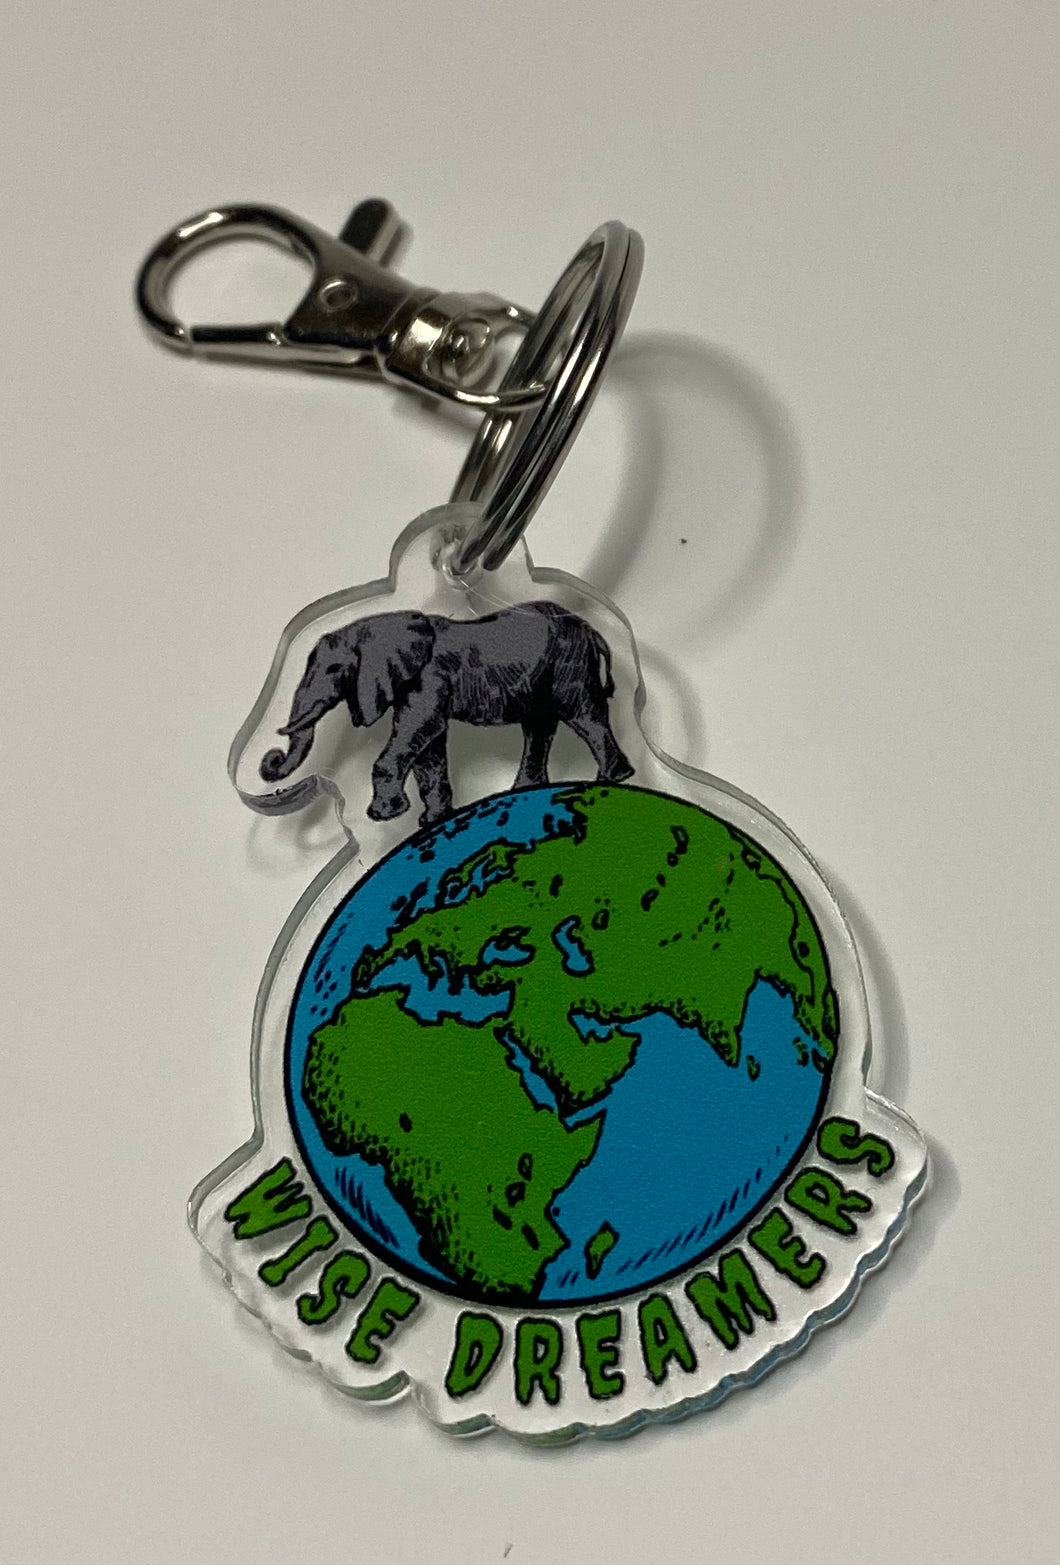 Wise Dreamers Keychain